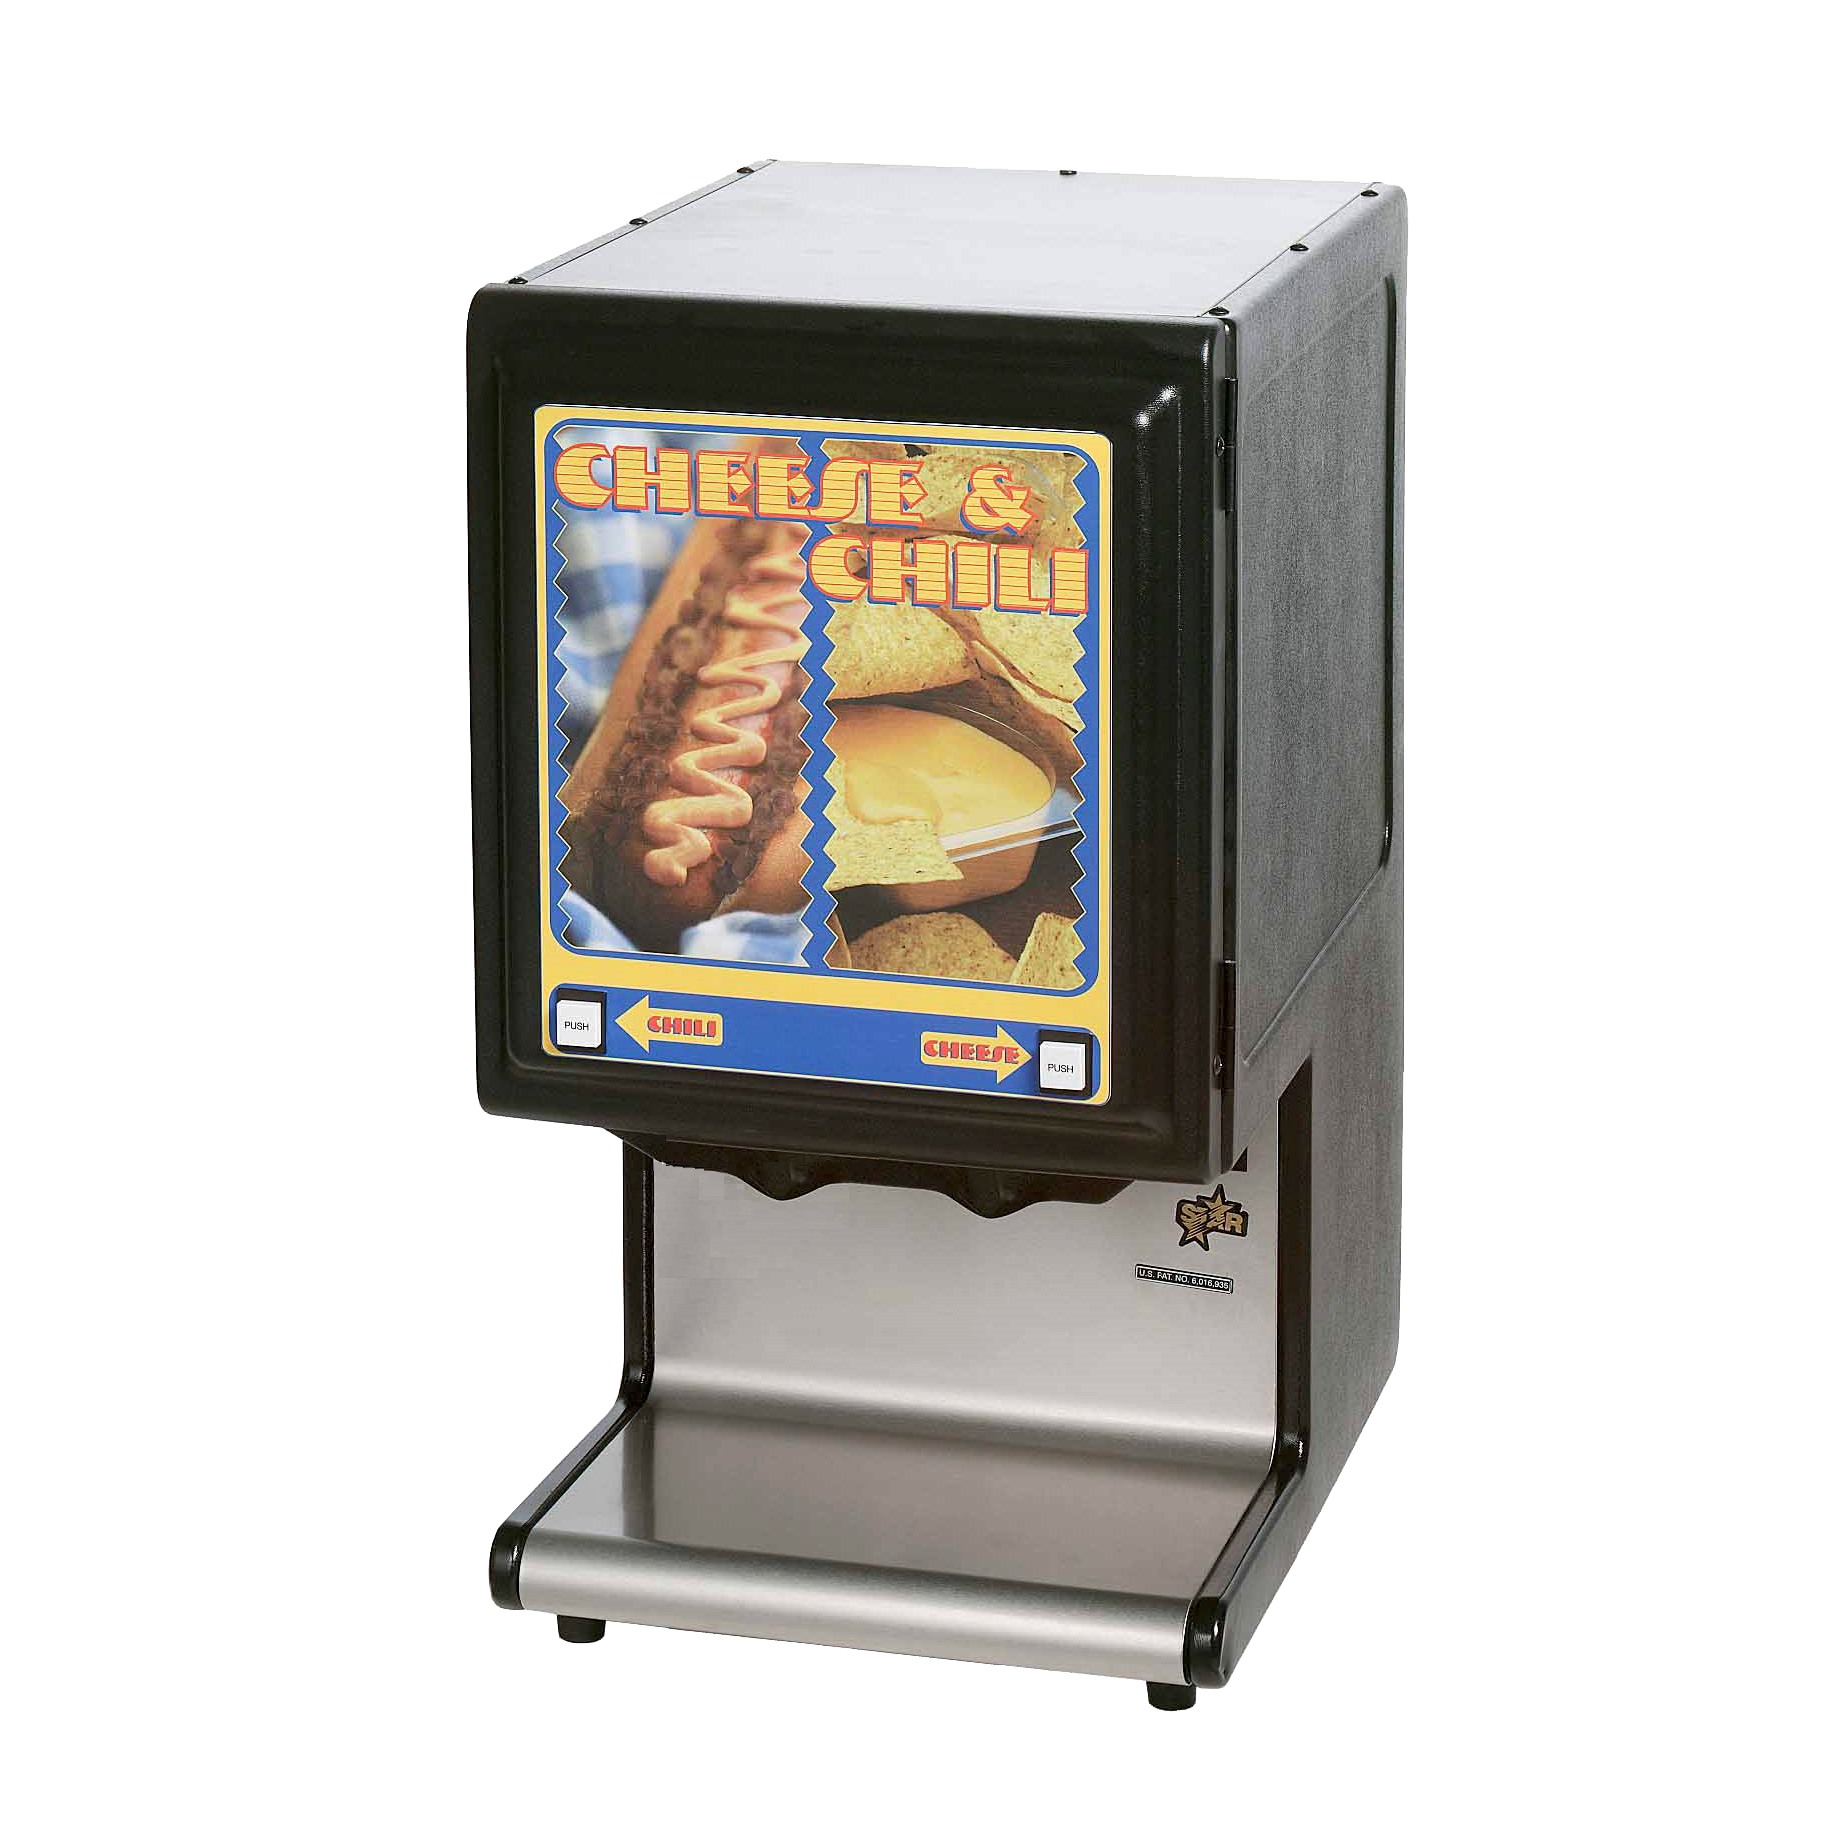 Star HPDE2 hot food dispenser